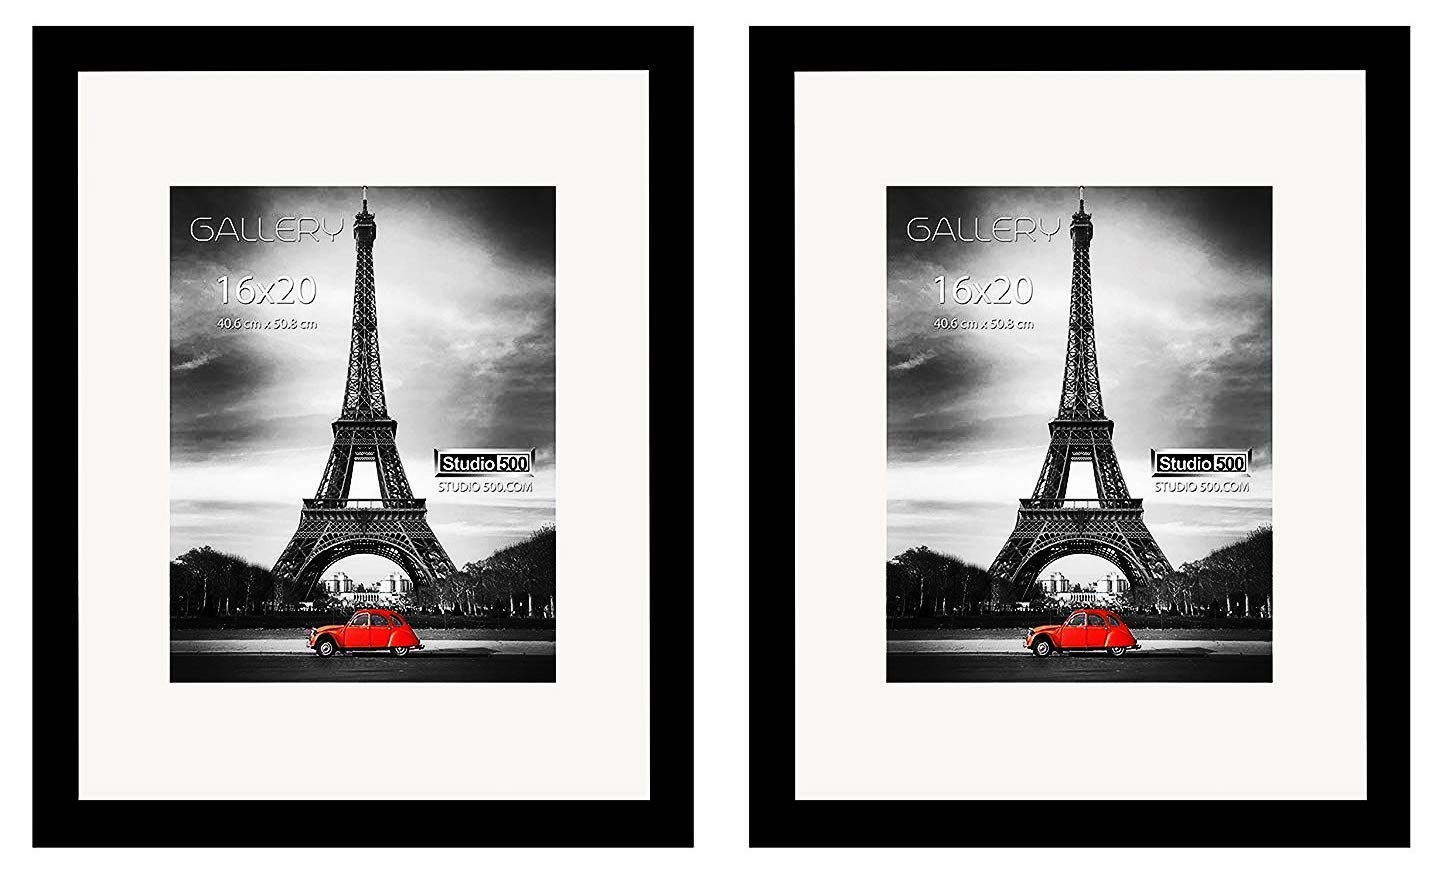 Studio 500-2 Pack Set of 16 by 20-inches 100% Real Wood Photo Frames, 100% Tempered Glass, Frames Come with 1pc White Core Beveled Mat, Matte Board for 11x14 Picture Opening, Comes in 2 Colors (Black)